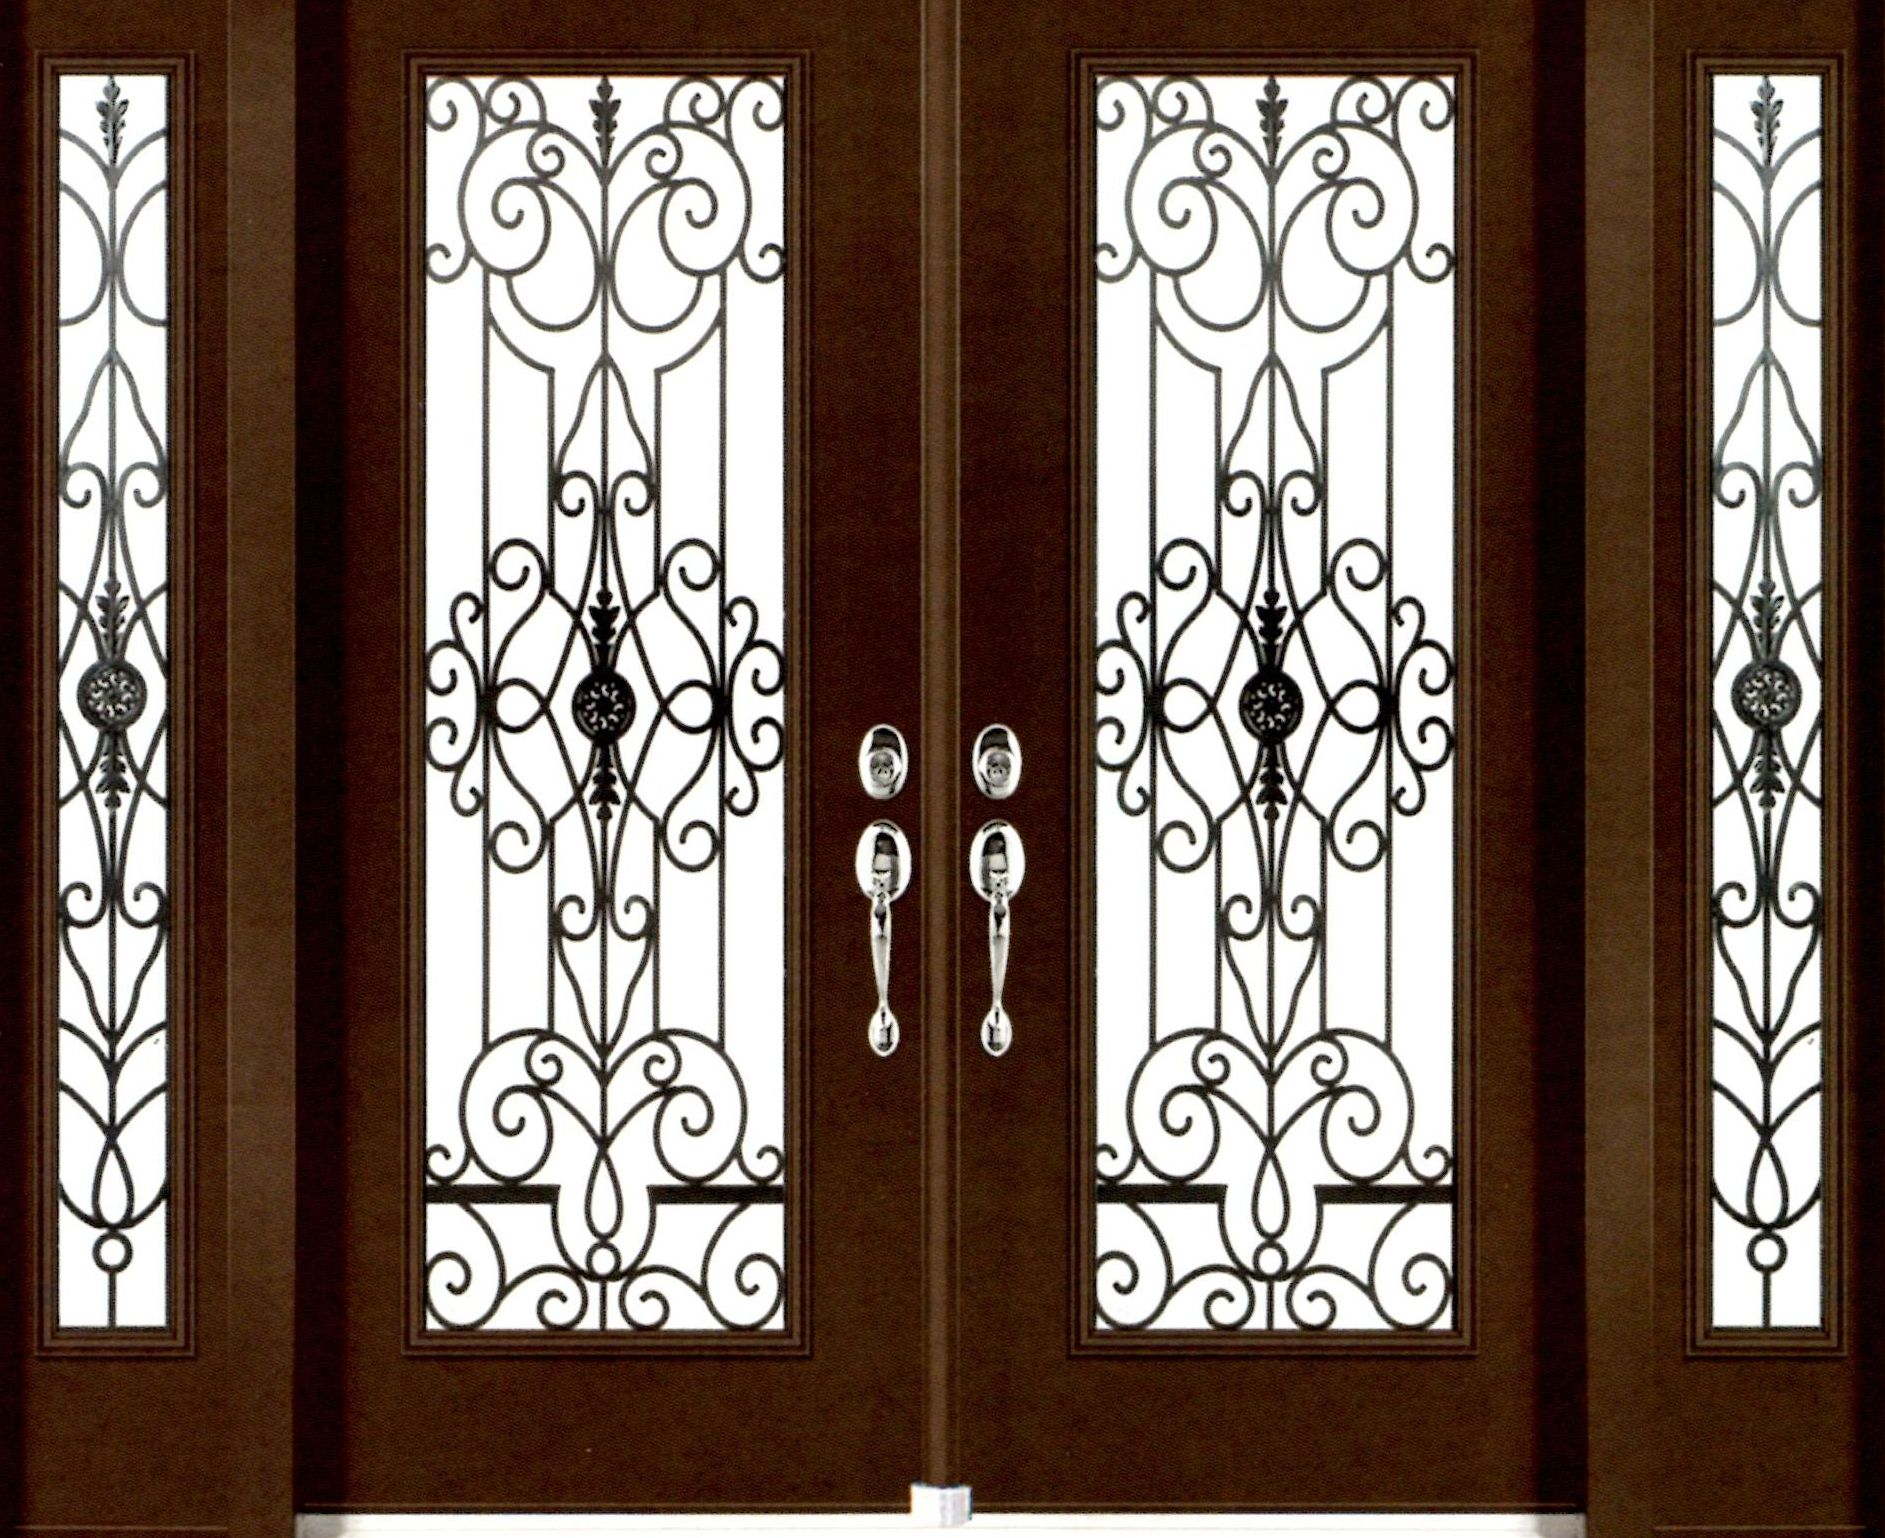 Stained glass door inserts and wrought iron door inserts wholesale stained glass for all your stained glass door insert or wrought iron door insert needs in the gta and beyond eventelaan Image collections